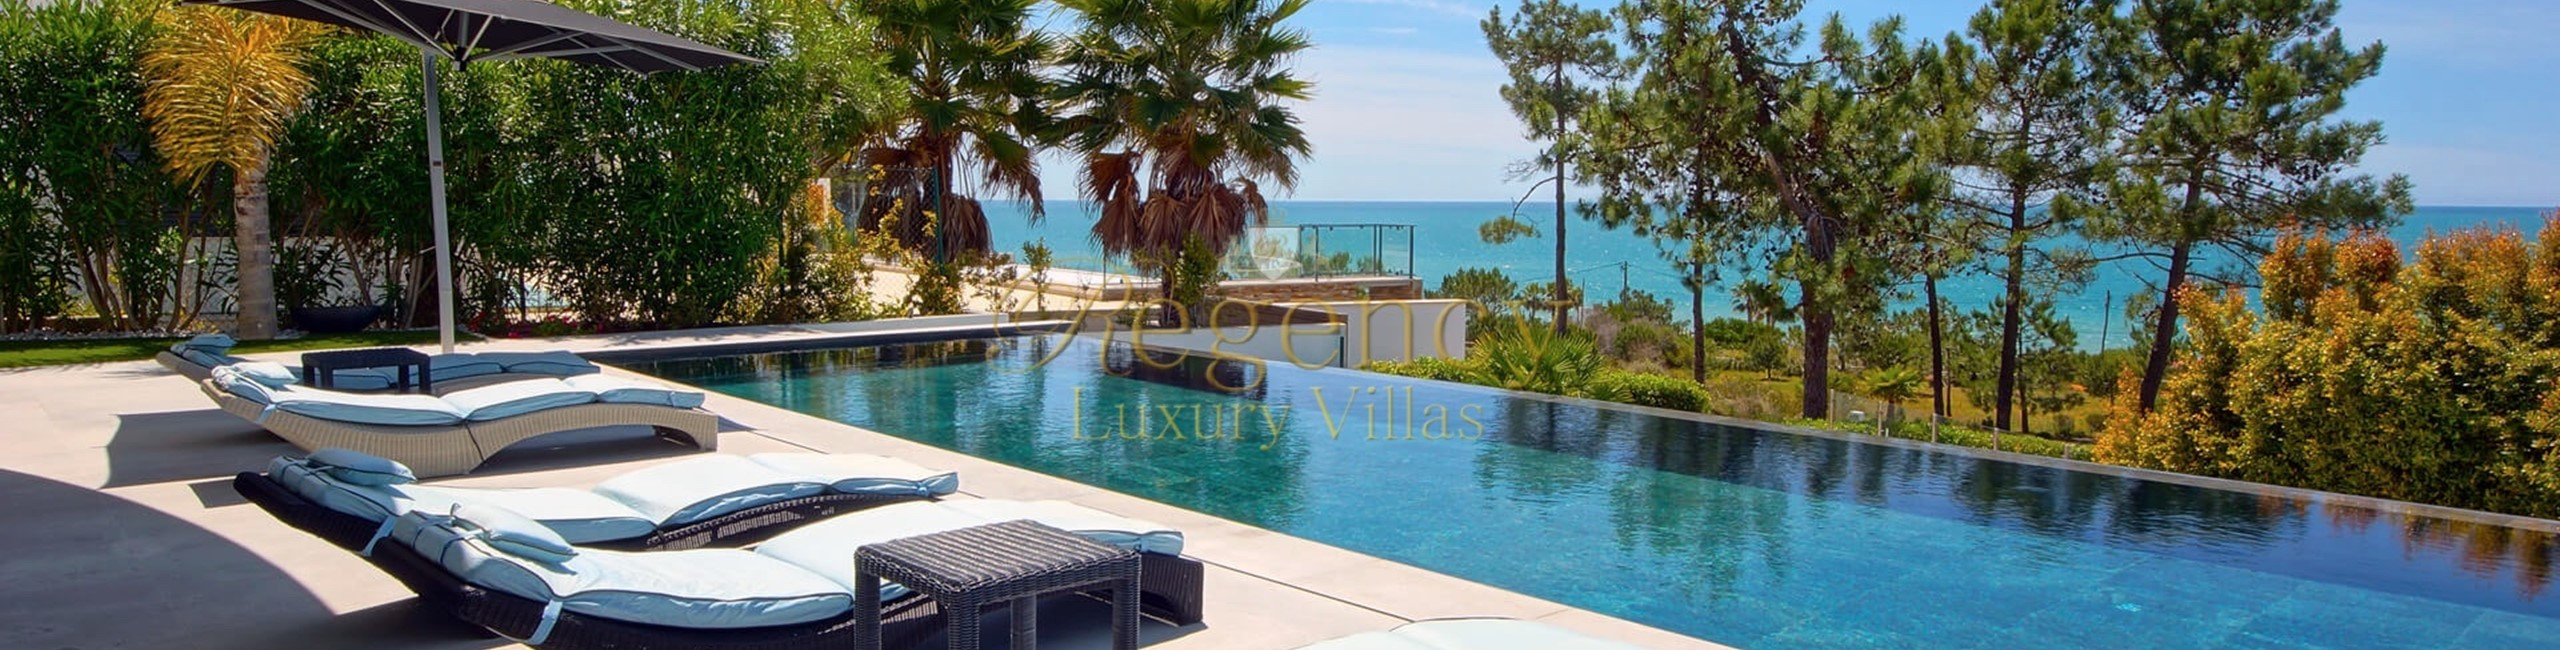 Villas To Rent With Games Room In Vale Do Lobo